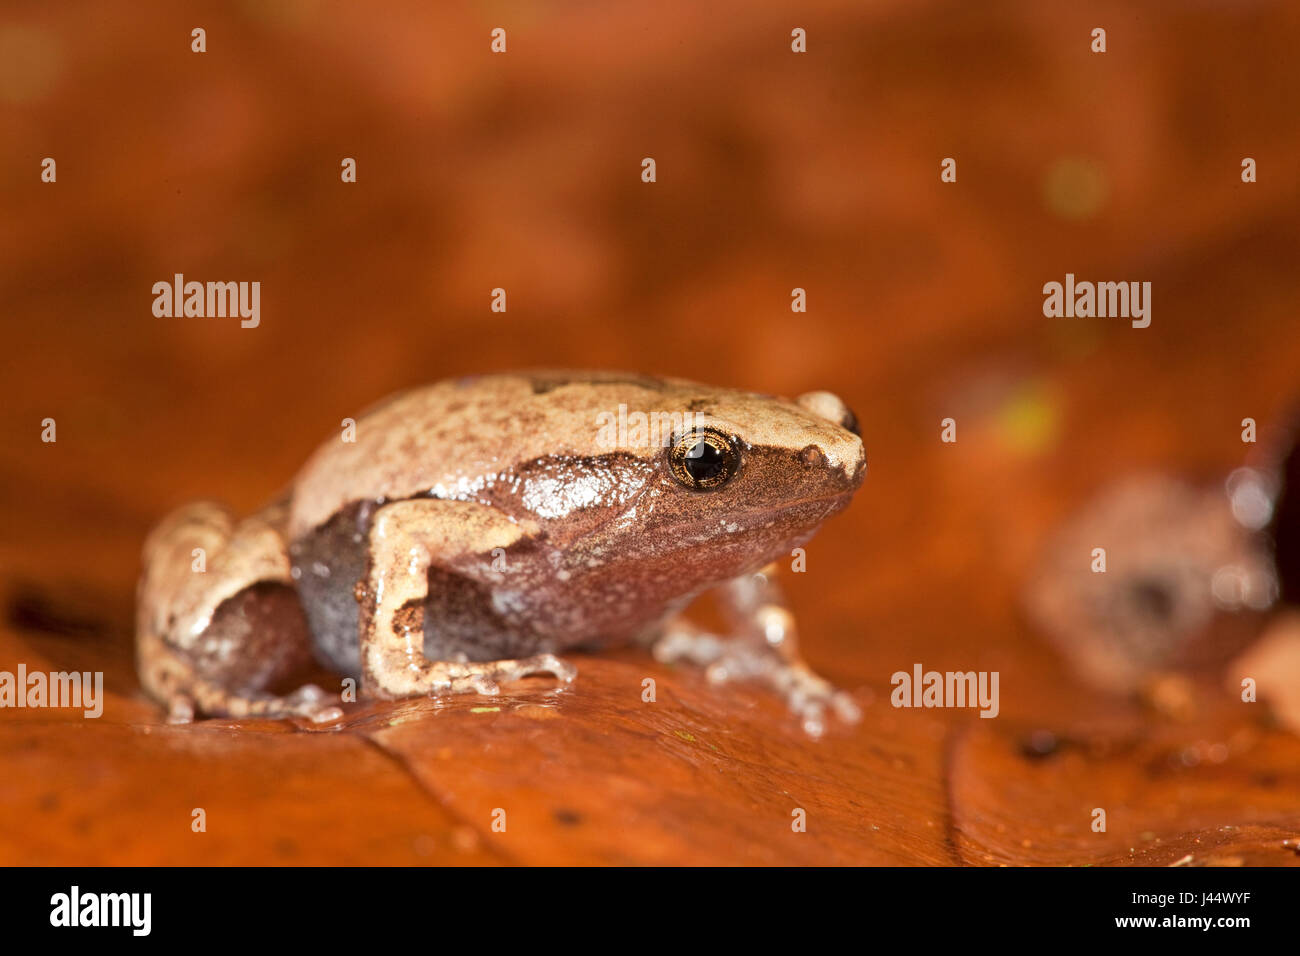 photo of an Amazon sheep frog on brown leafs - Stock Image